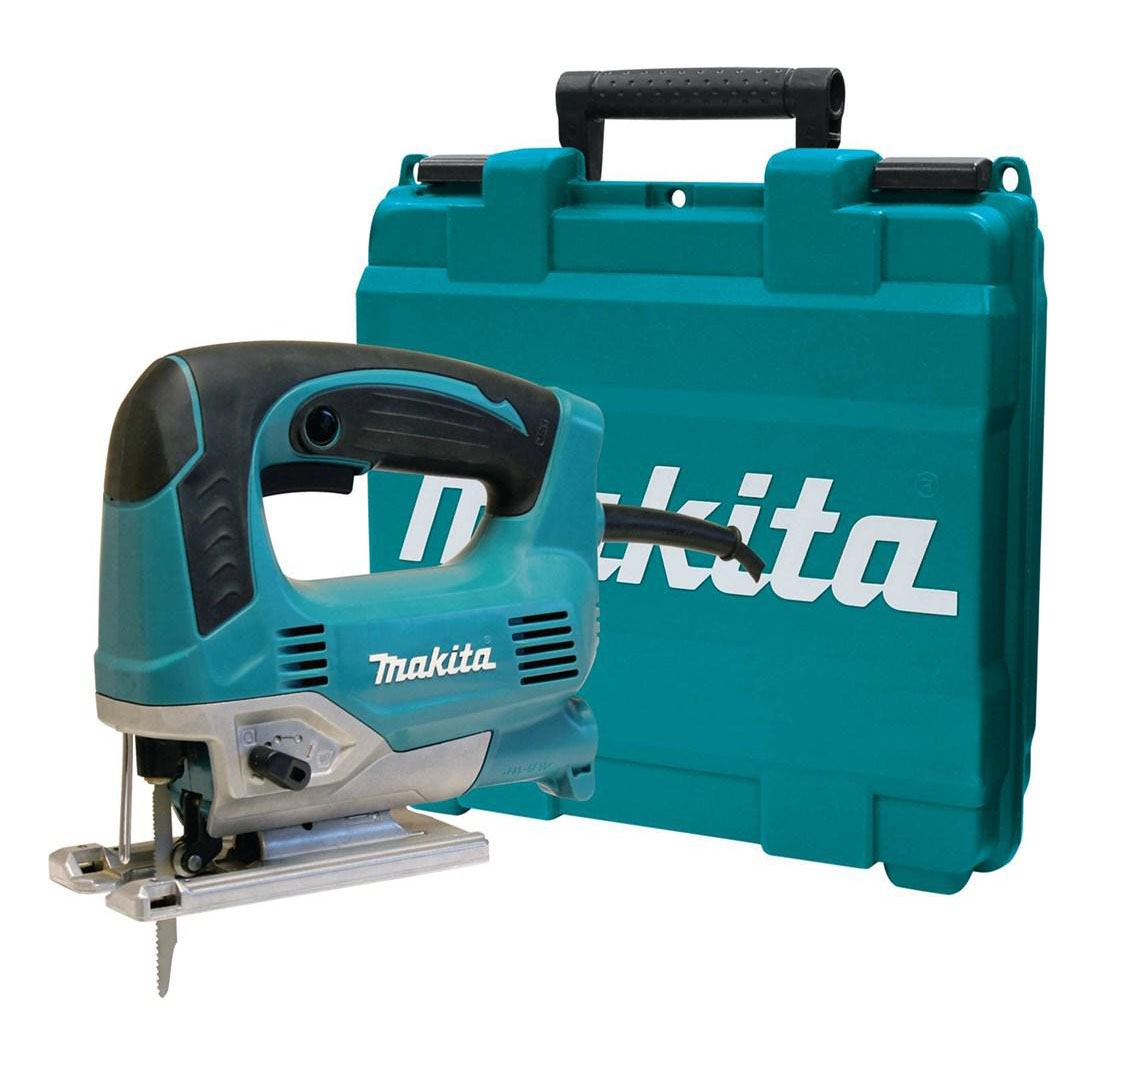 Makita jigsaw 4350fct with led light stonetooling makita jig saw 4350fct with led light keyboard keysfo Image collections